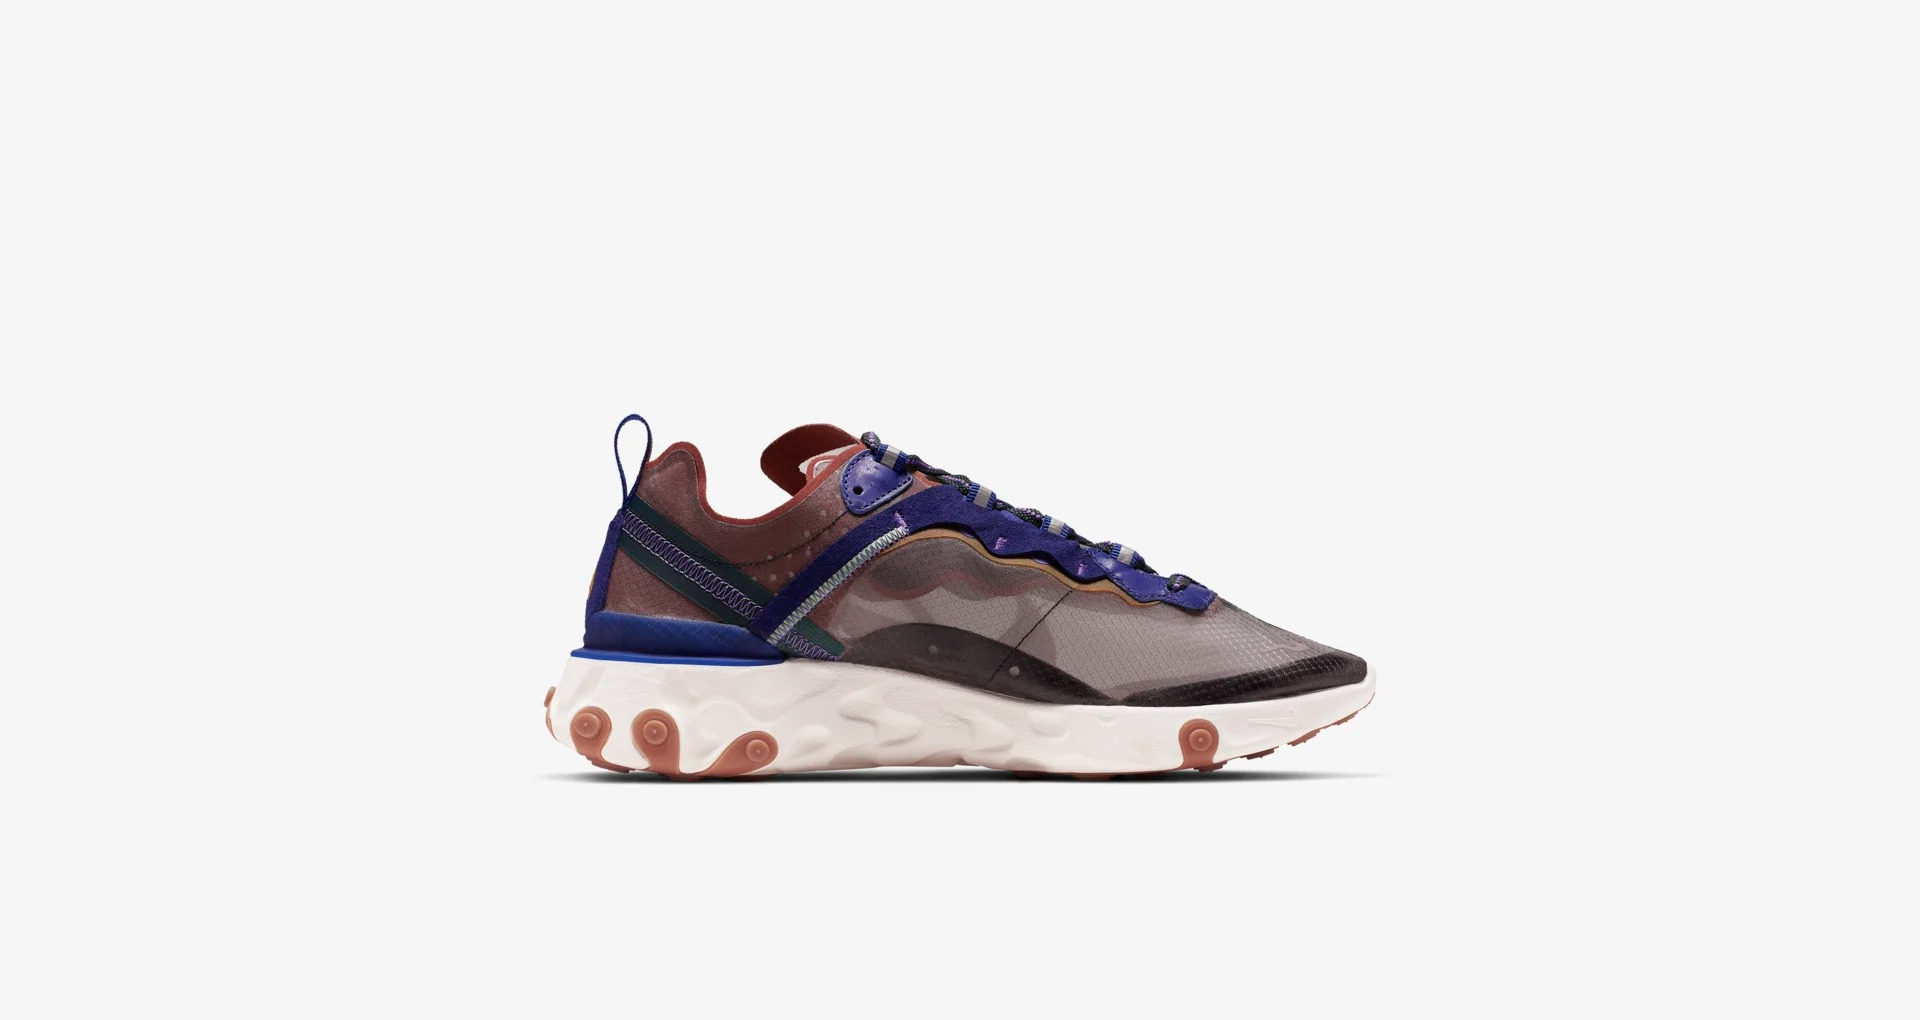 AQ1090 200 Nike React Element 87 Dusty Peach 3